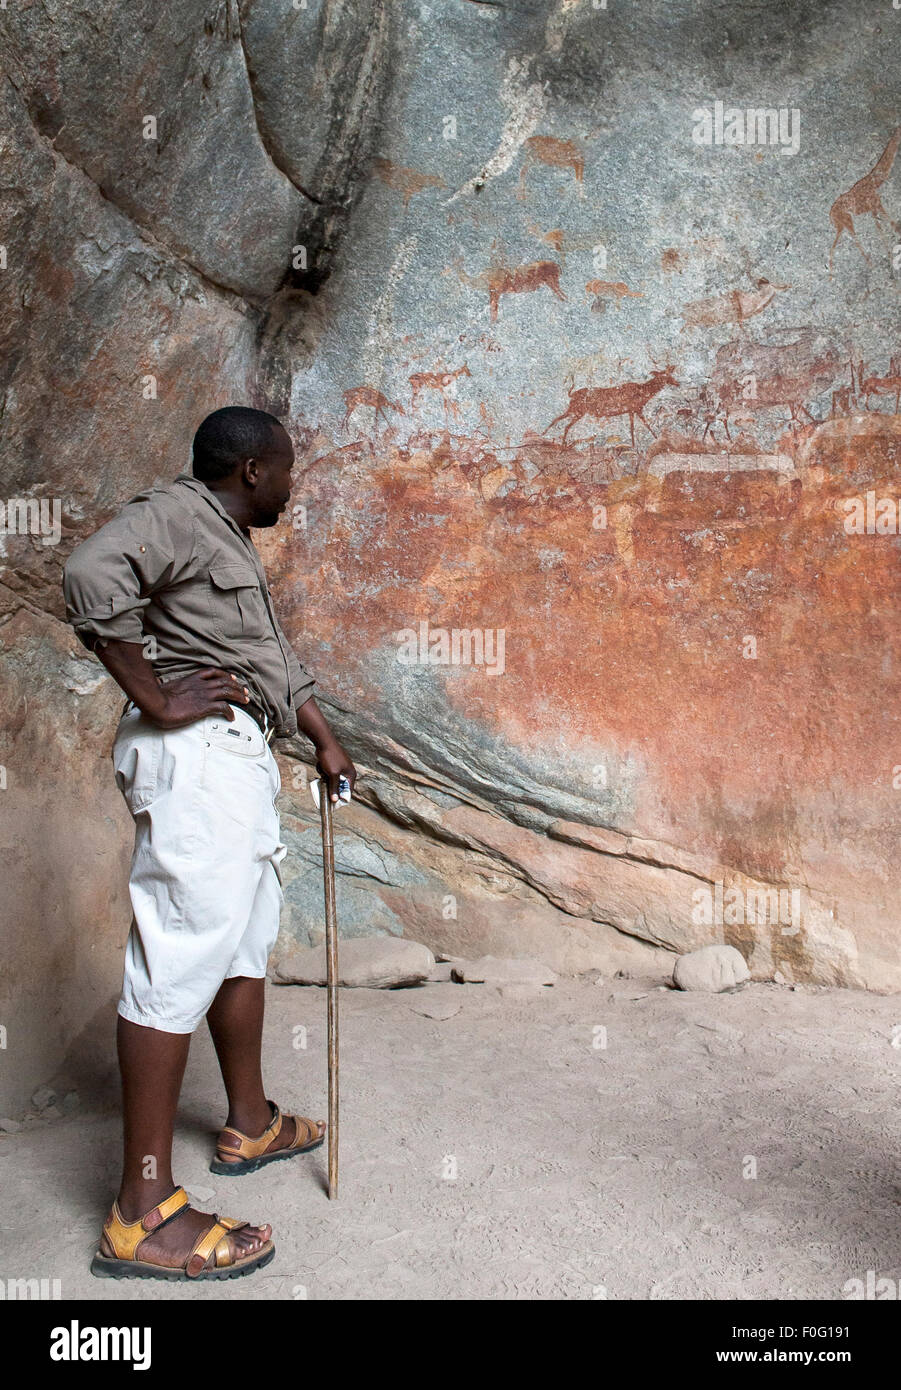 Local guide looking at rock art with animals painted on wall Nswatugi Caves Matobo National Park Zimbabwe Africa - Stock Image